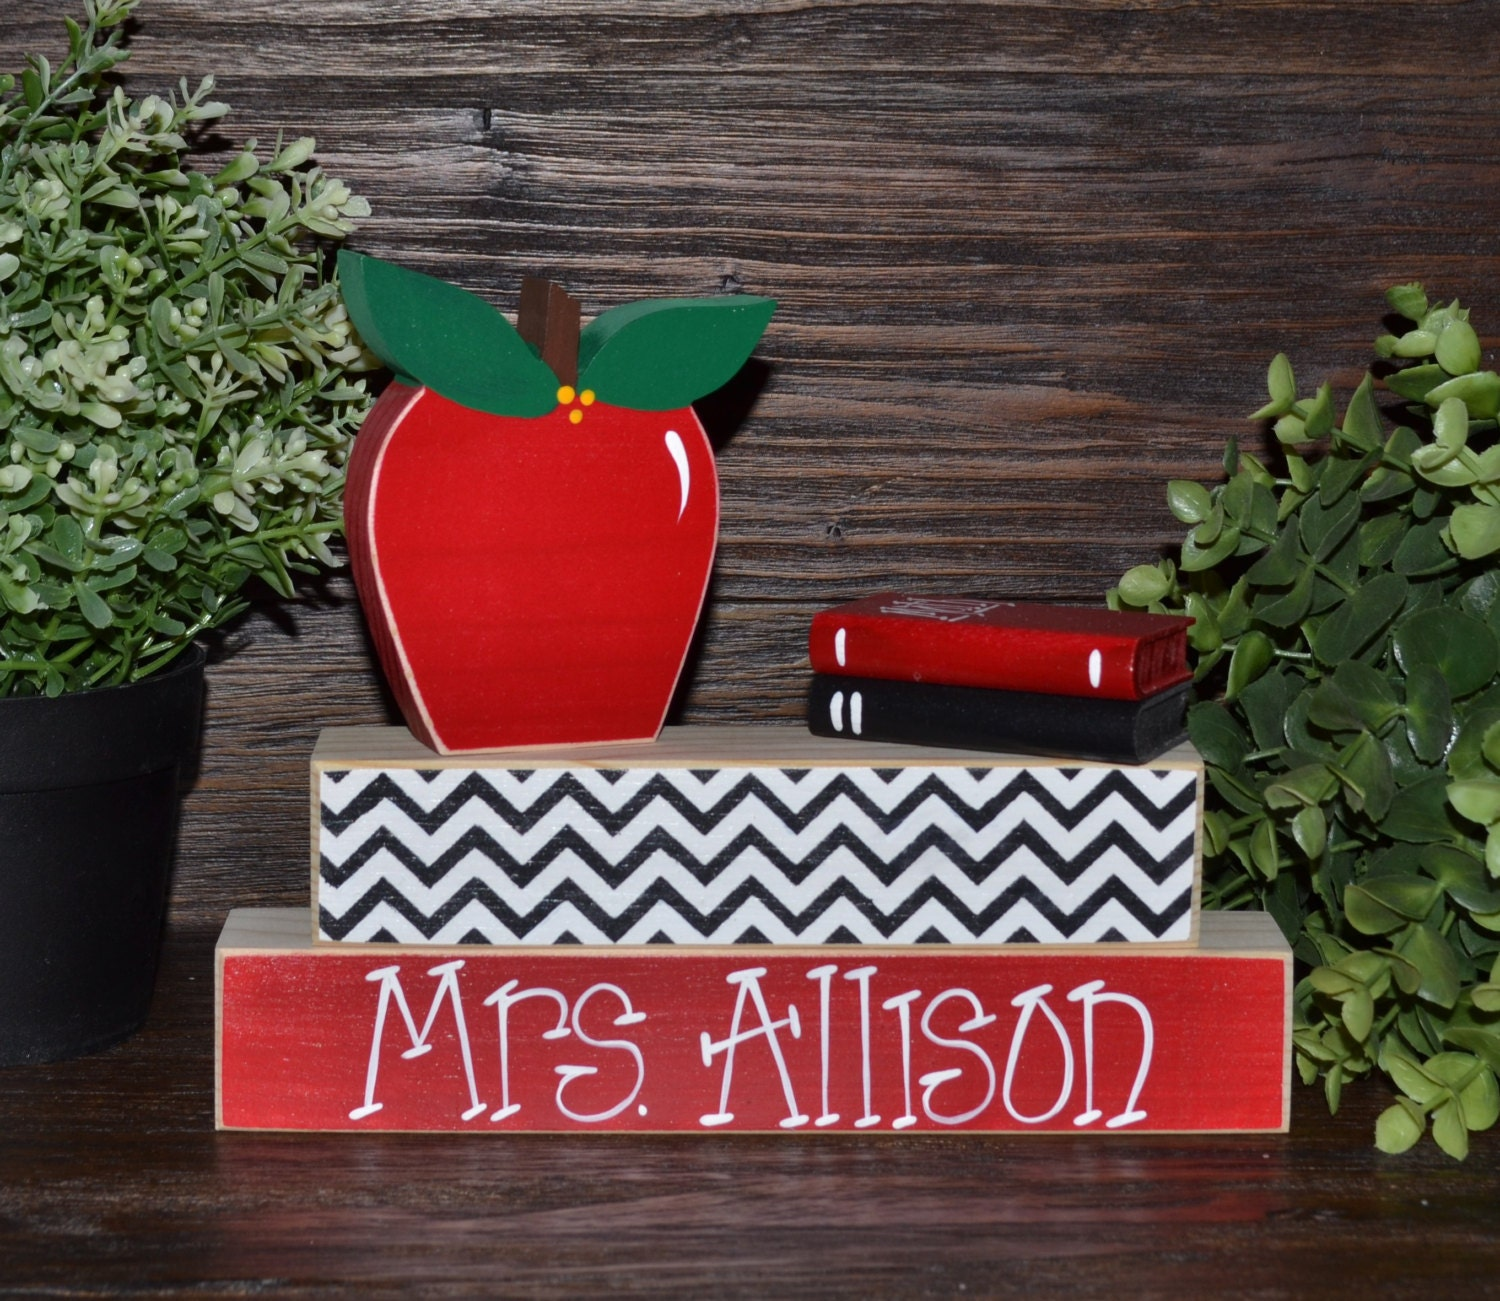 Personalized Gifts: Unique Teacher Gift Personalized Teacher Name Plate Apple